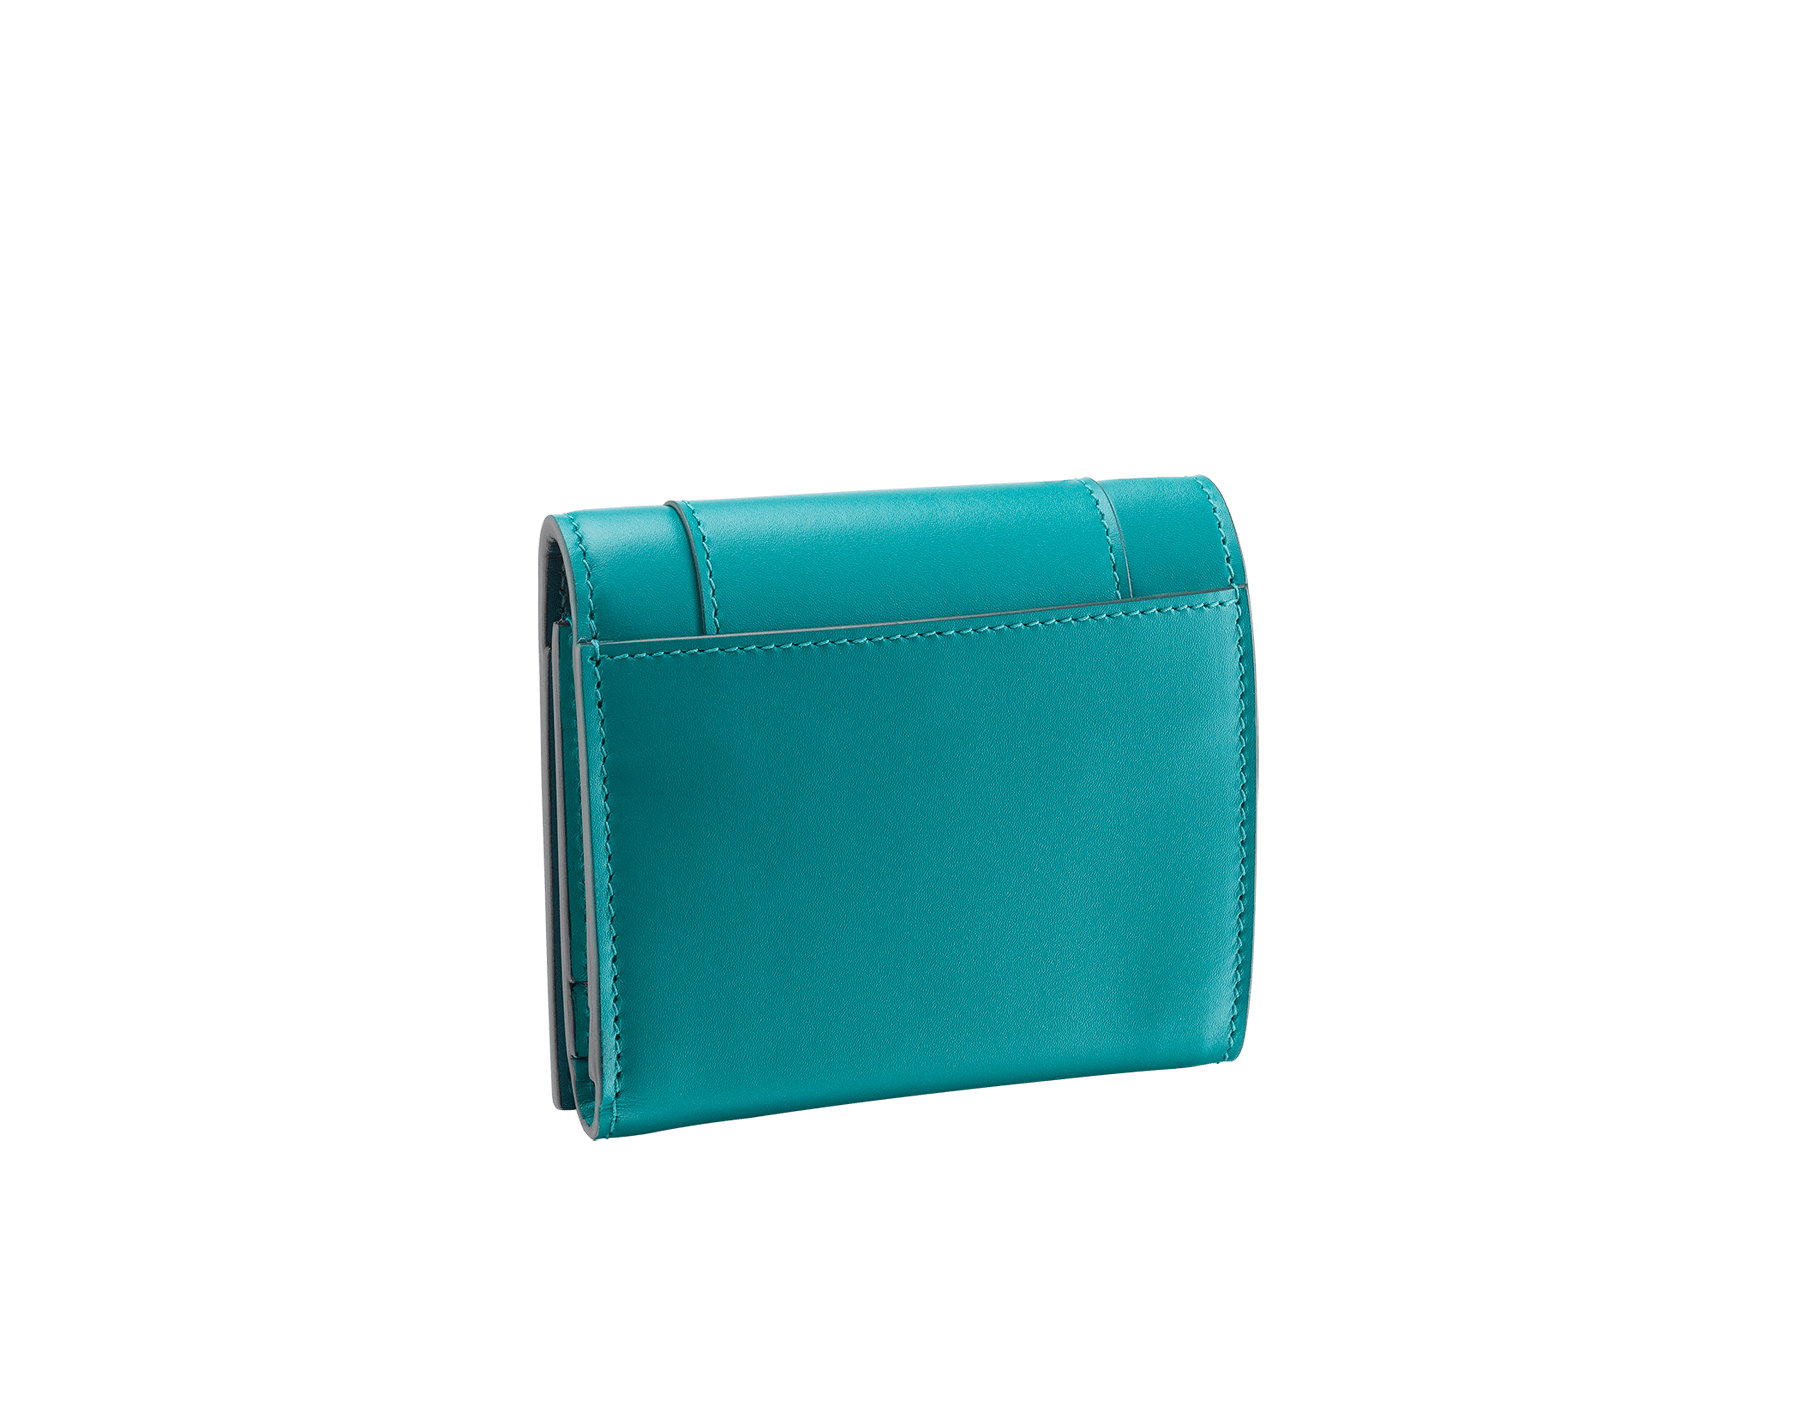 Serpenti Forever super compact wallet in deep jade and tropical turquoise calf leather. Iconic snakehead stud closure in black and white enamel with green malachite enamel eyes. 288034 image 3